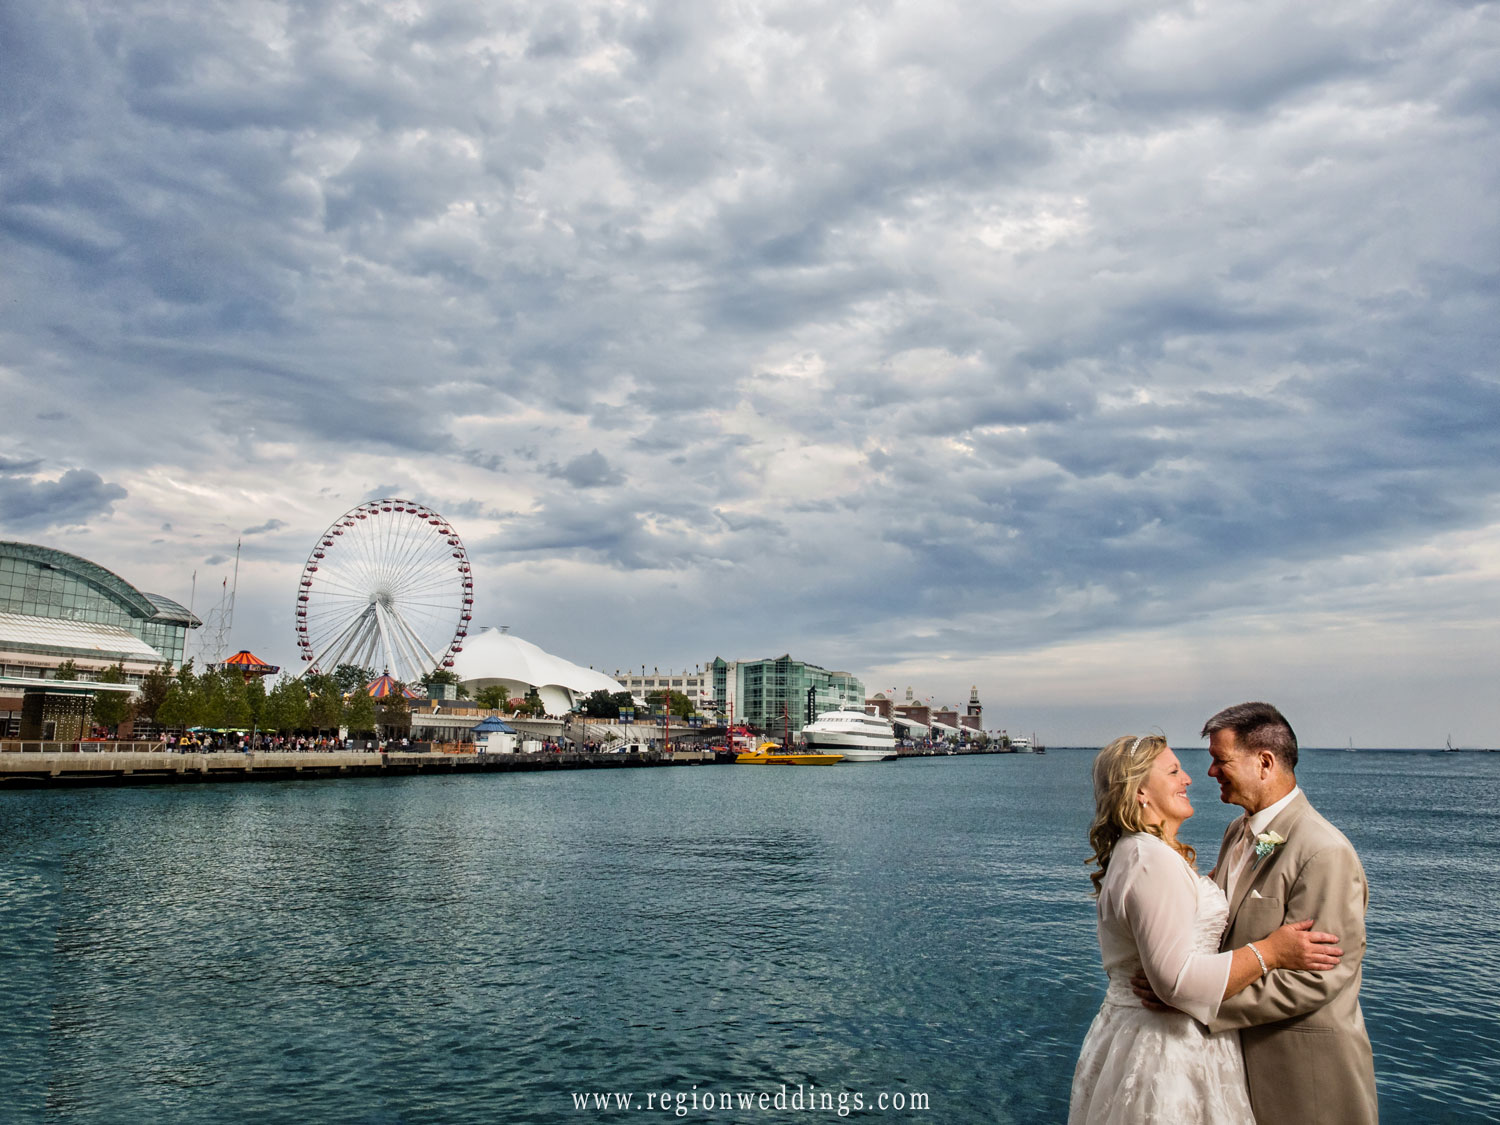 The bride and groom embrace with the ferris wheel at Navy Pier in the background.